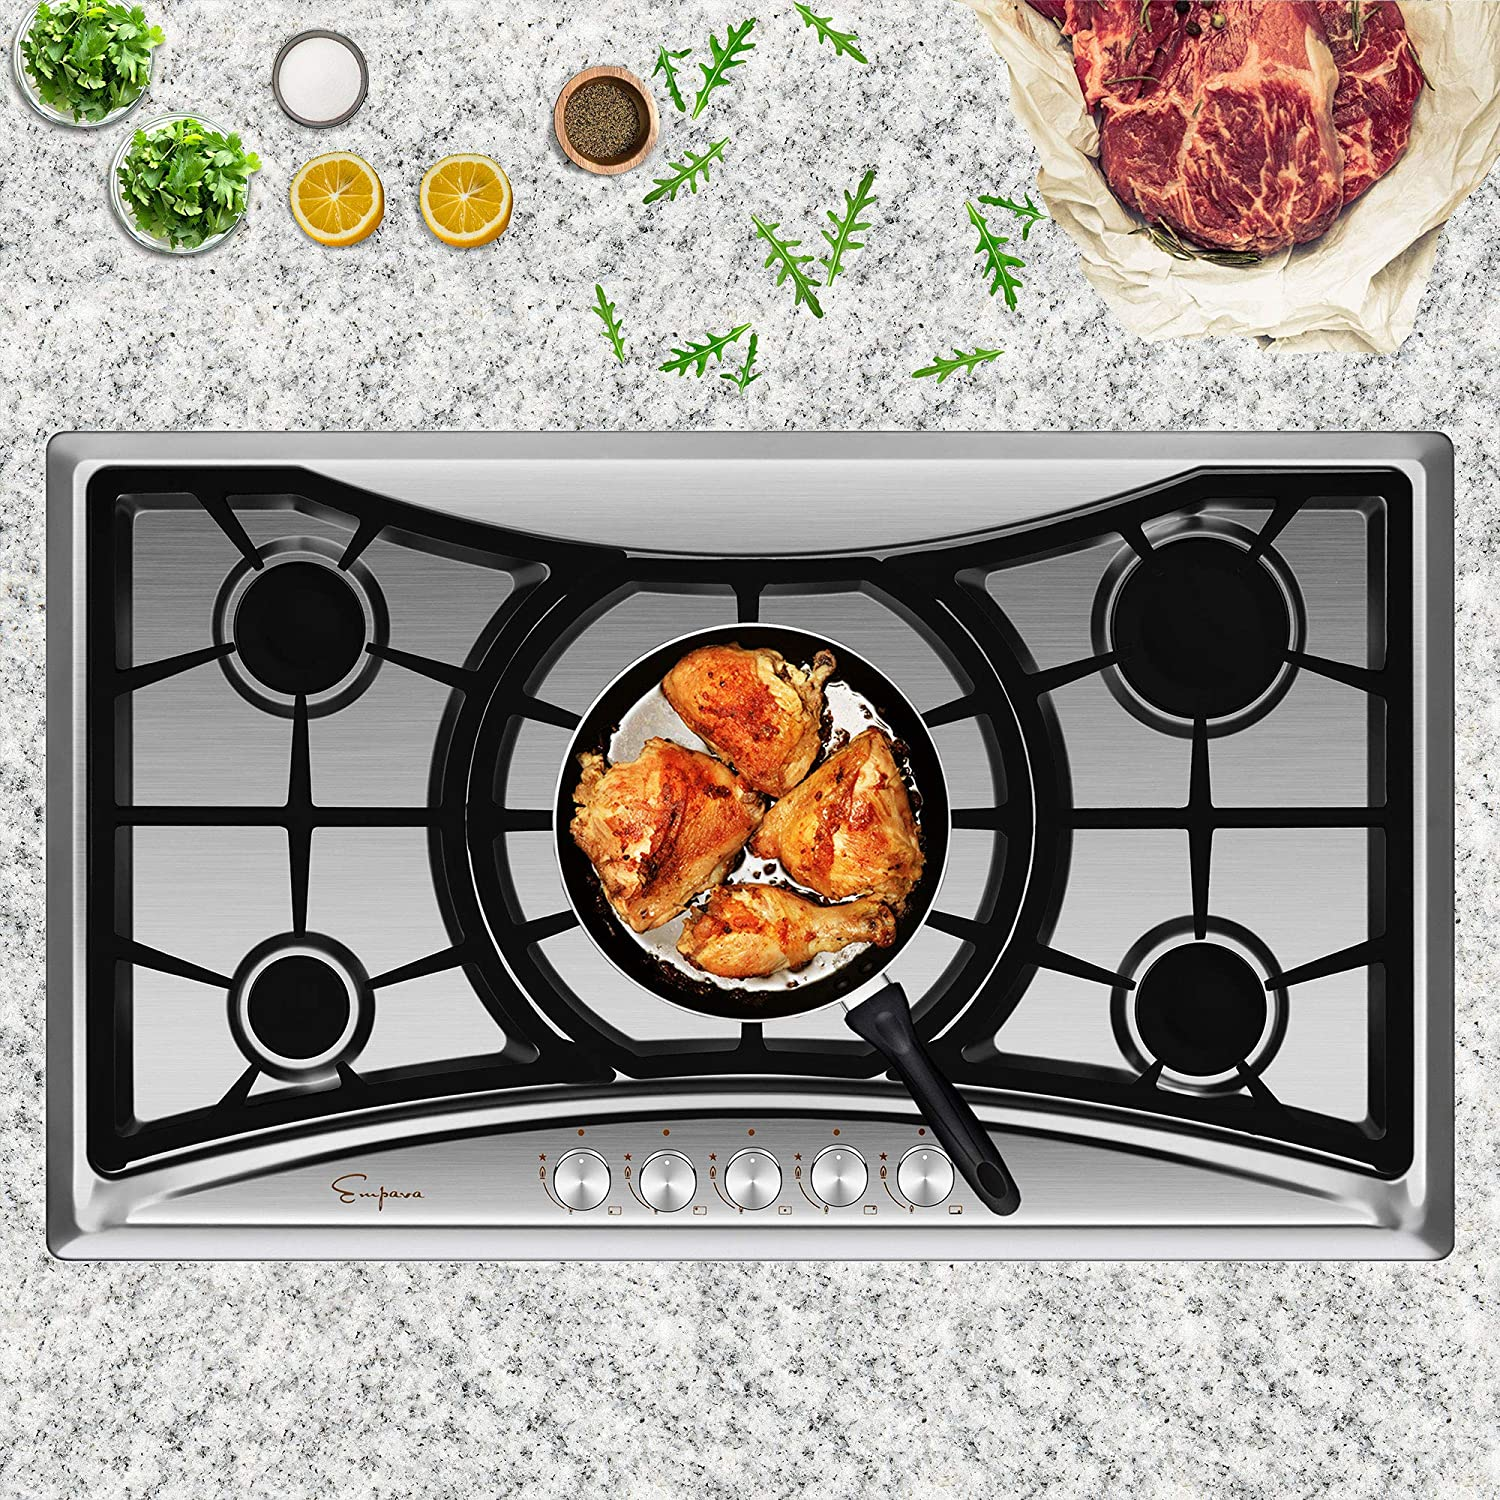 Empava 36 inch Gas Stove Cooktop with 5 Sealed Burners